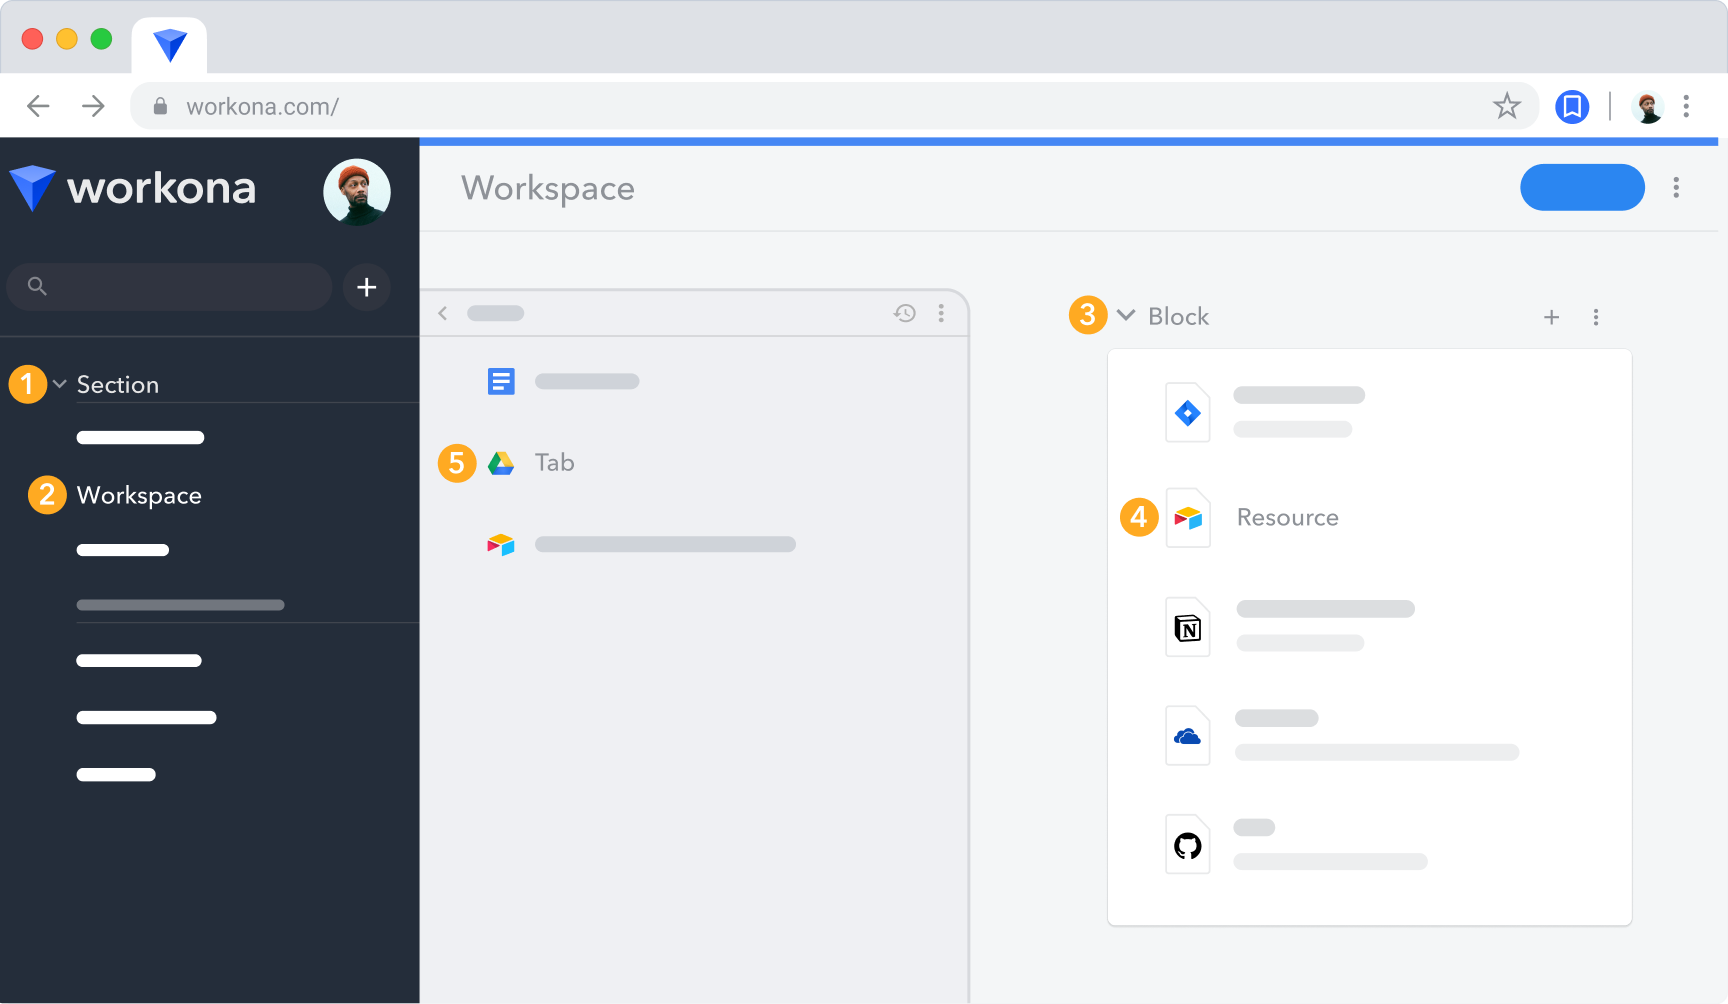 Workona interface showing the organizing elements: sections, workspaces, blocks, resources, and tabs.